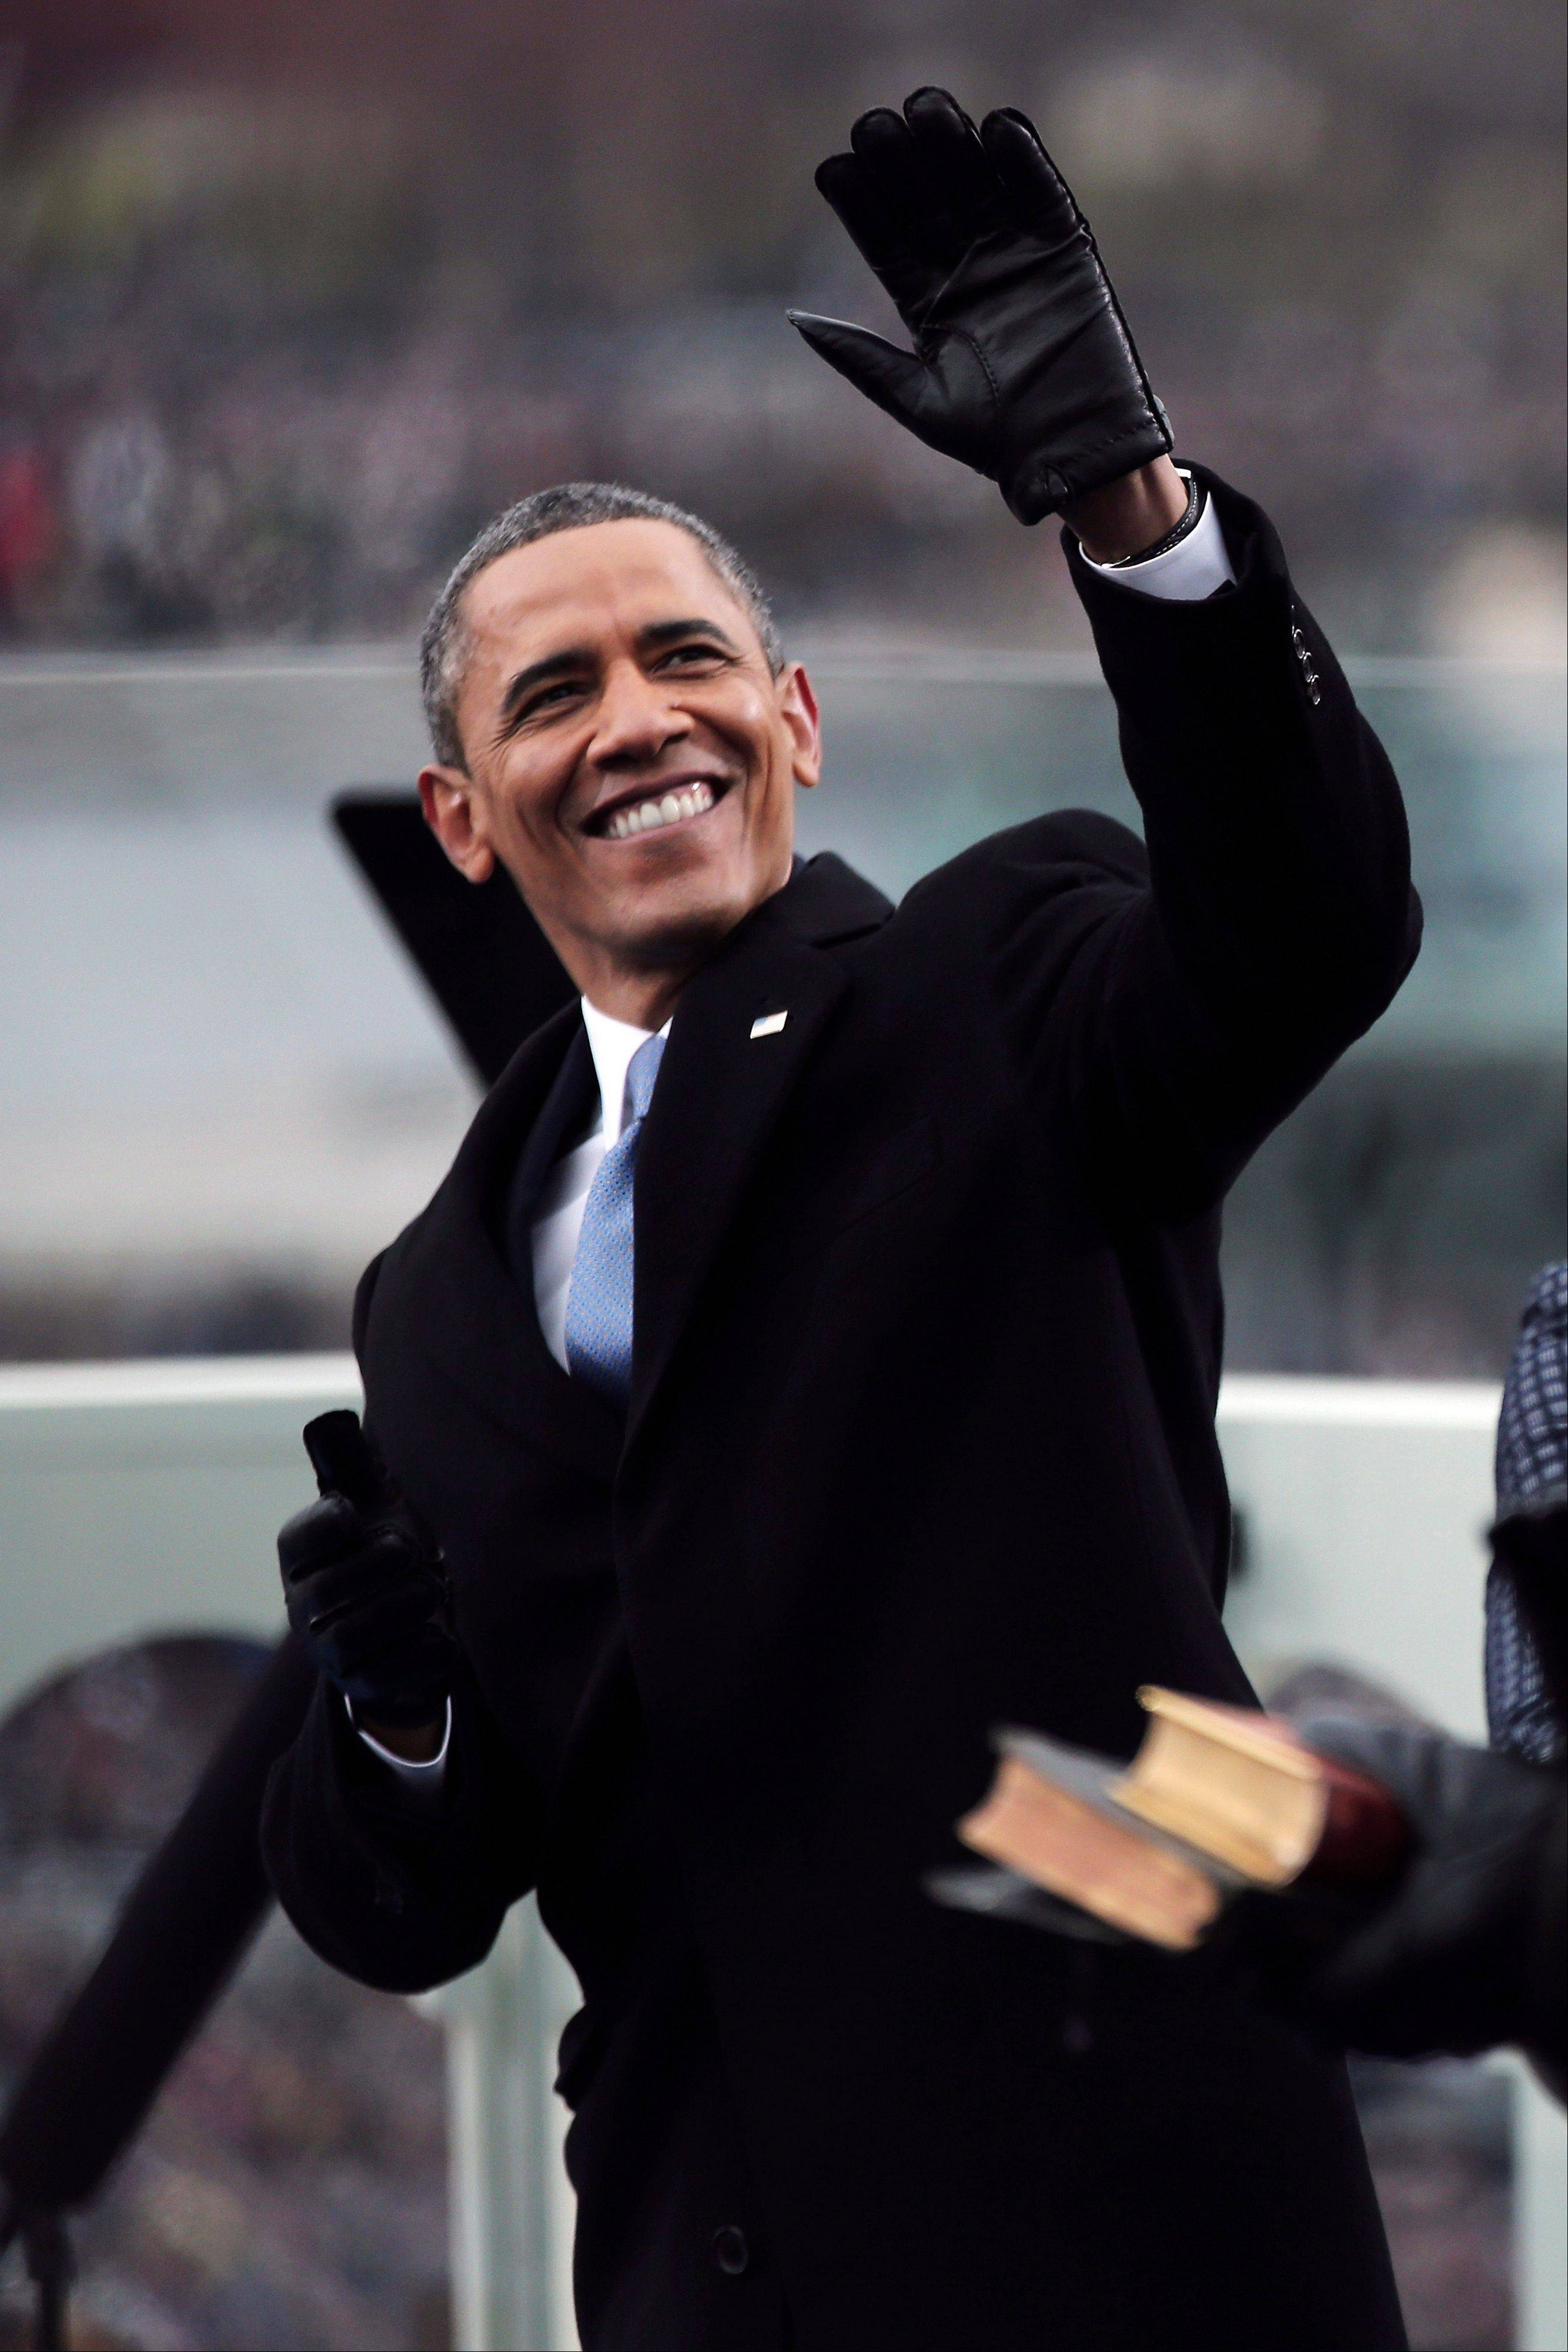 President Barack Obama' waves on the West Front of the Capitol in Washington, Monday, Jan. 21, 2013, prior to his ceremonial swearing-in ceremony during the 57th Presidential Inauguration. (AP Photo/Win McNamee, Pool)